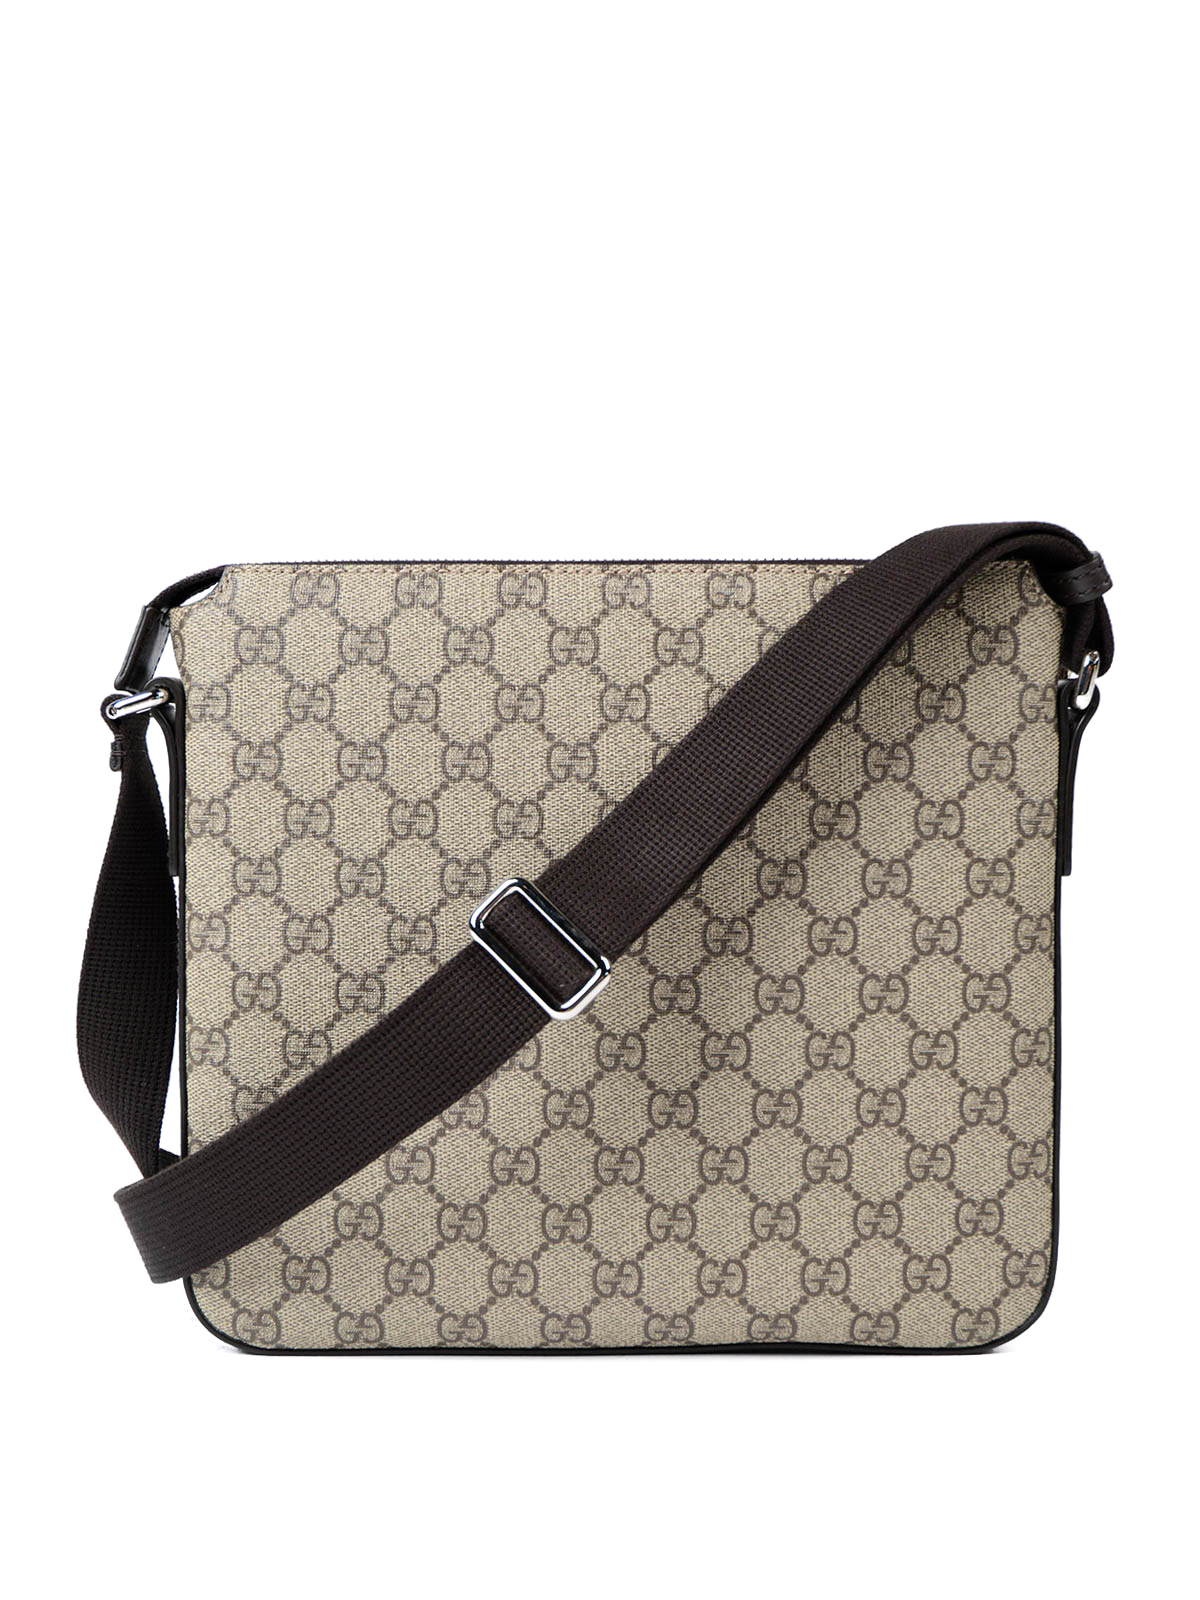 3201ee7b8 Gucci - GG Supreme canvas messenger bag - shoulder bags - 406410 ...